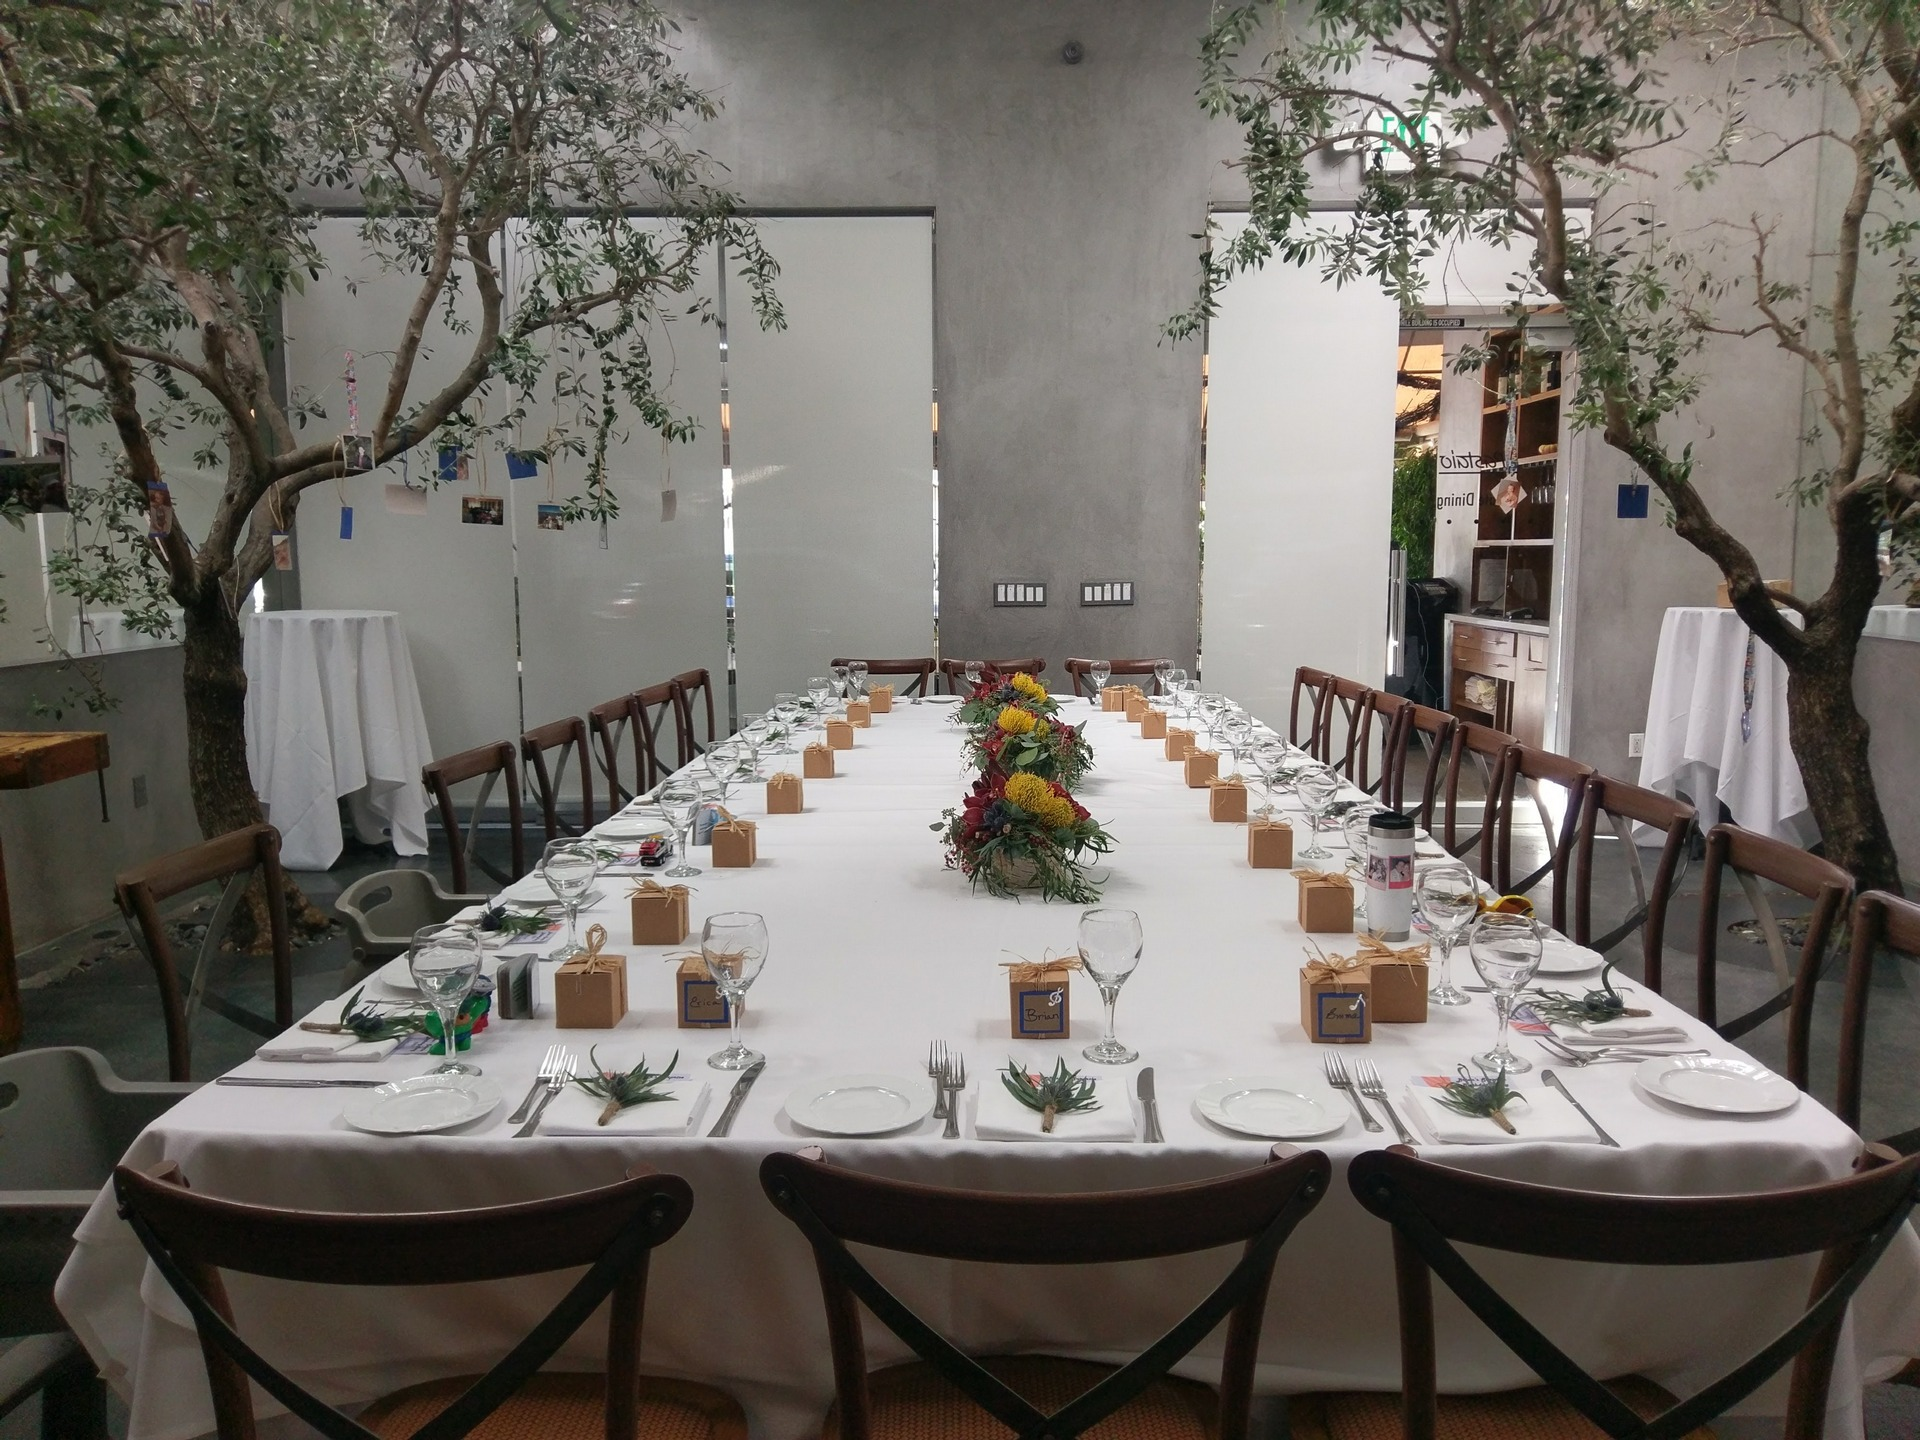 Il Pastaio Restaurant | Private Dining Events-891464149